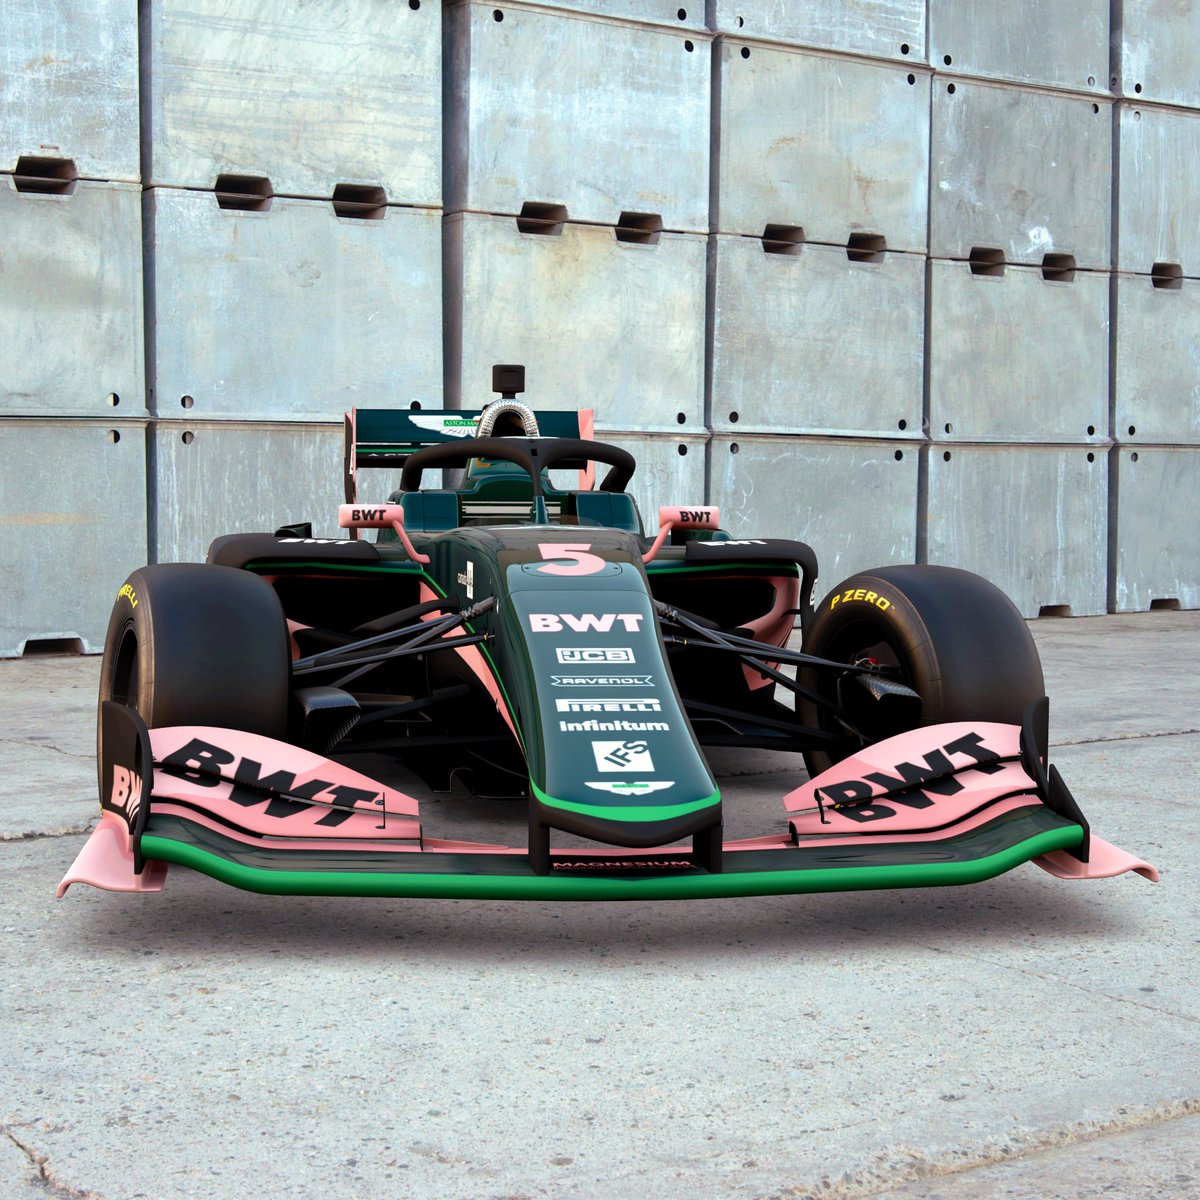 Tom Bellingham On Twitter So According To Reports Aston Will Be British Racing Green Next Year But Bwt Want Plenty Of Pink Still Introducing The Watermelon Https T Co Uvhdawbr8v